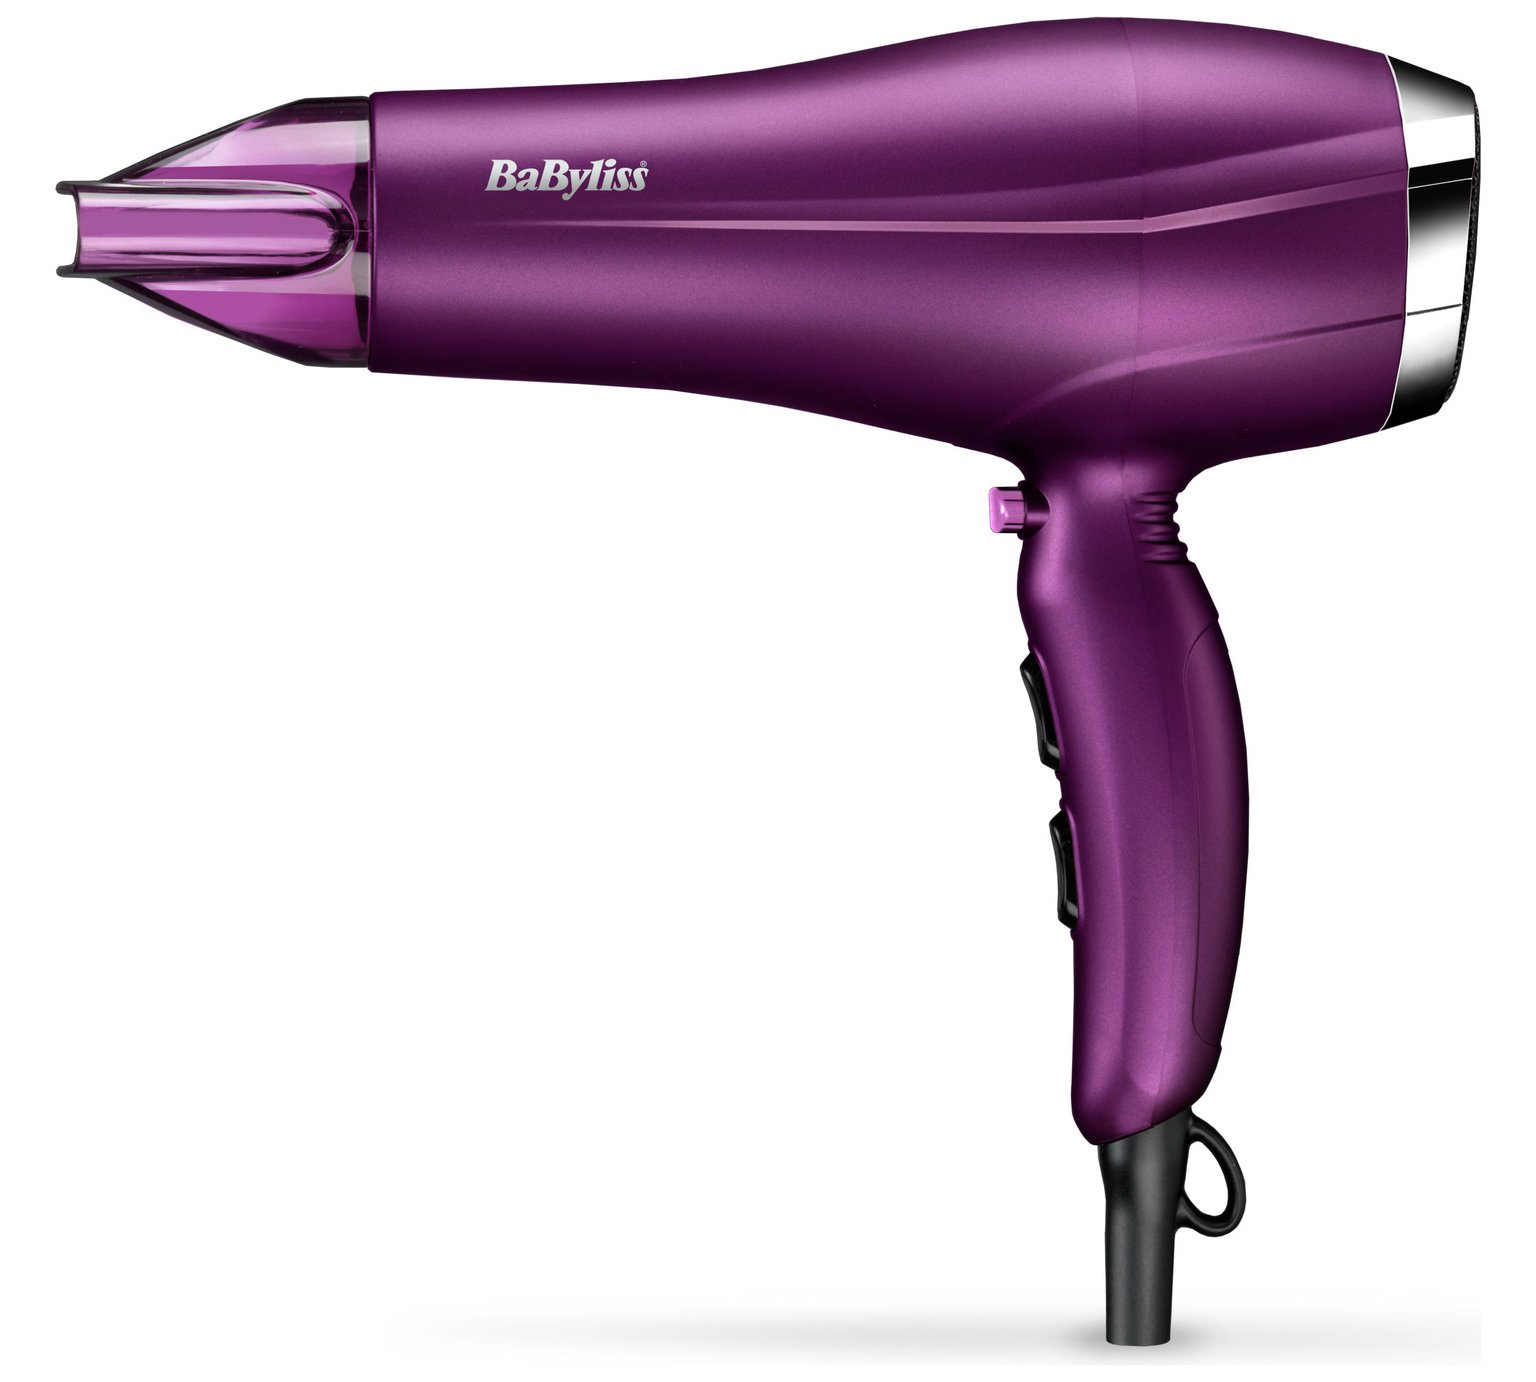 BaByliss 5513U Velvet Orchid Hair Dryer